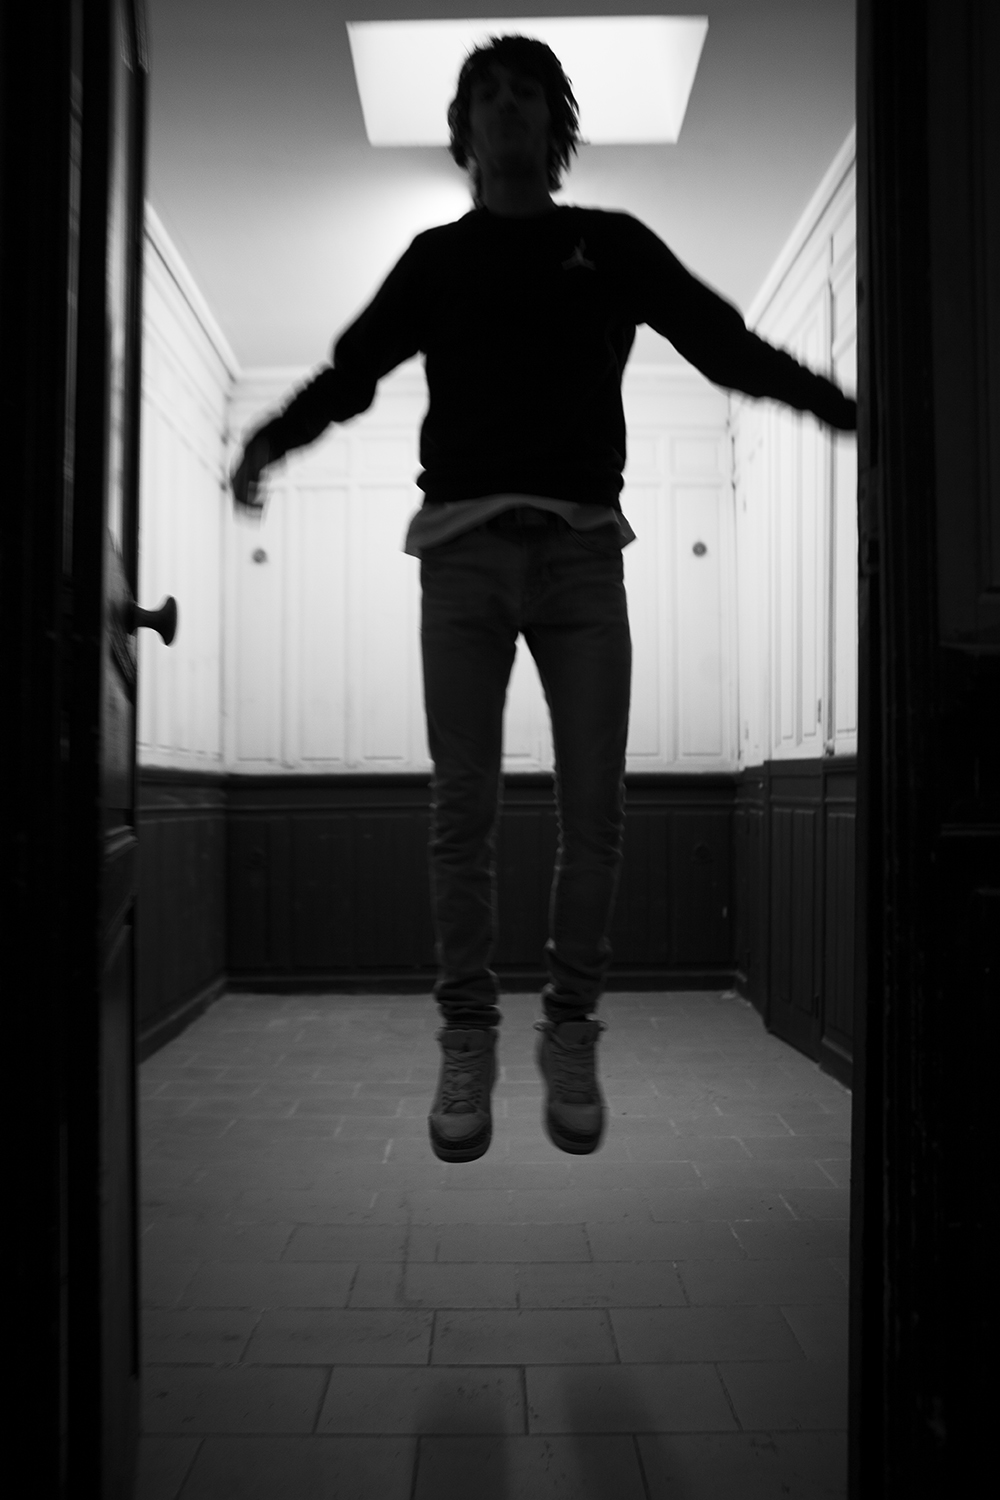 Apparition Bilal, #3, Bilal, Marseille, 2016